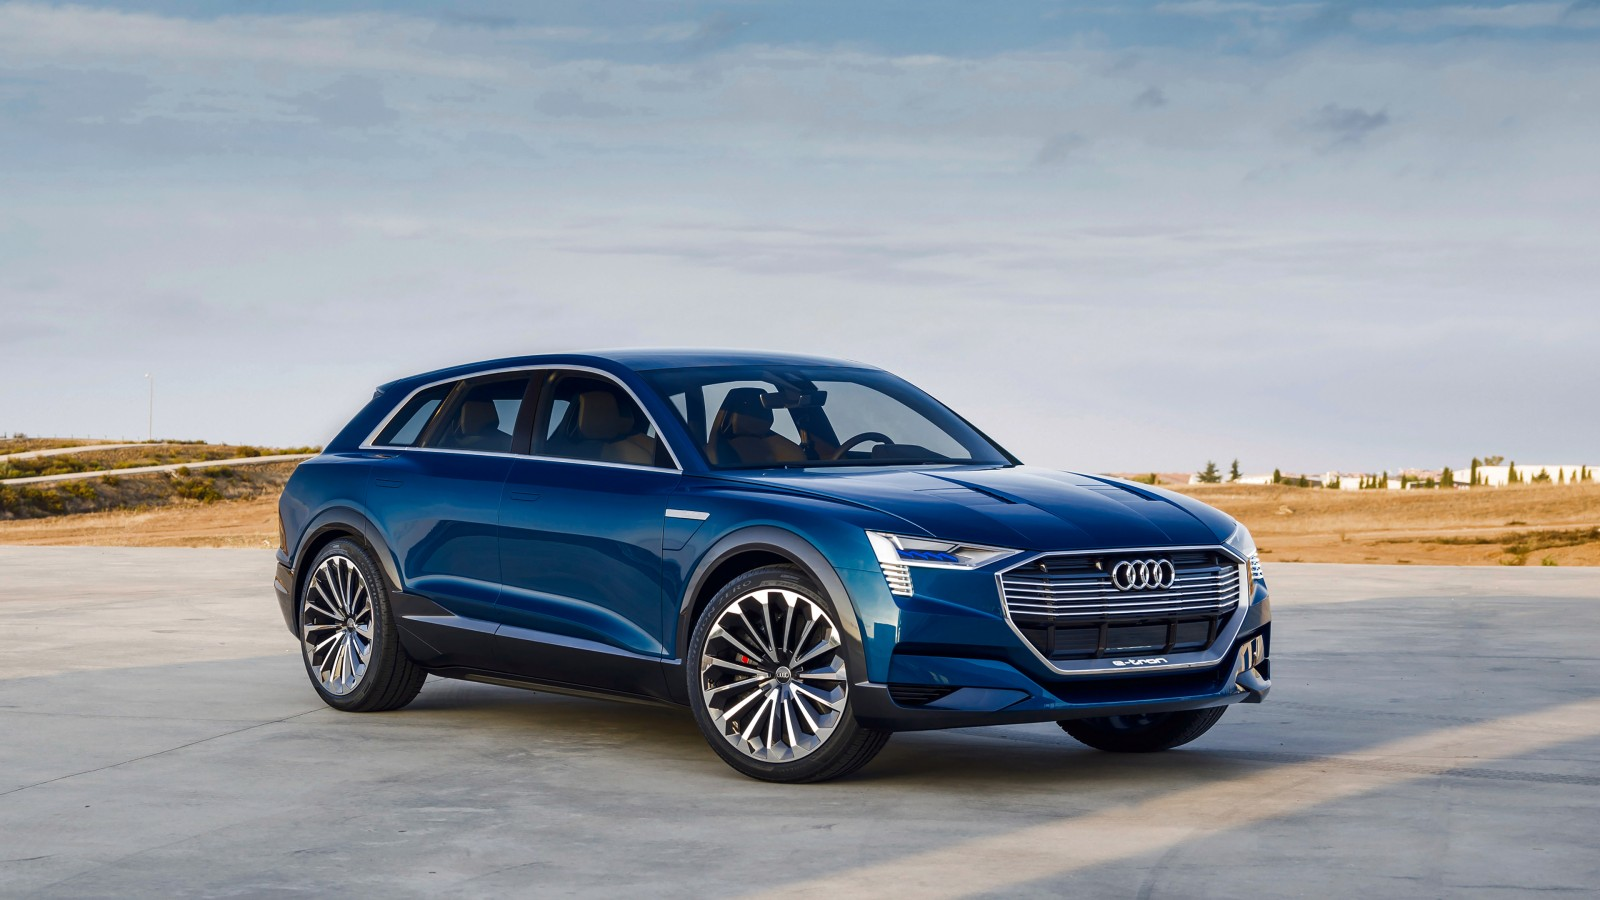 2018 Audi e Tron Quattro Concept Wallpaper | HD Car Wallpapers